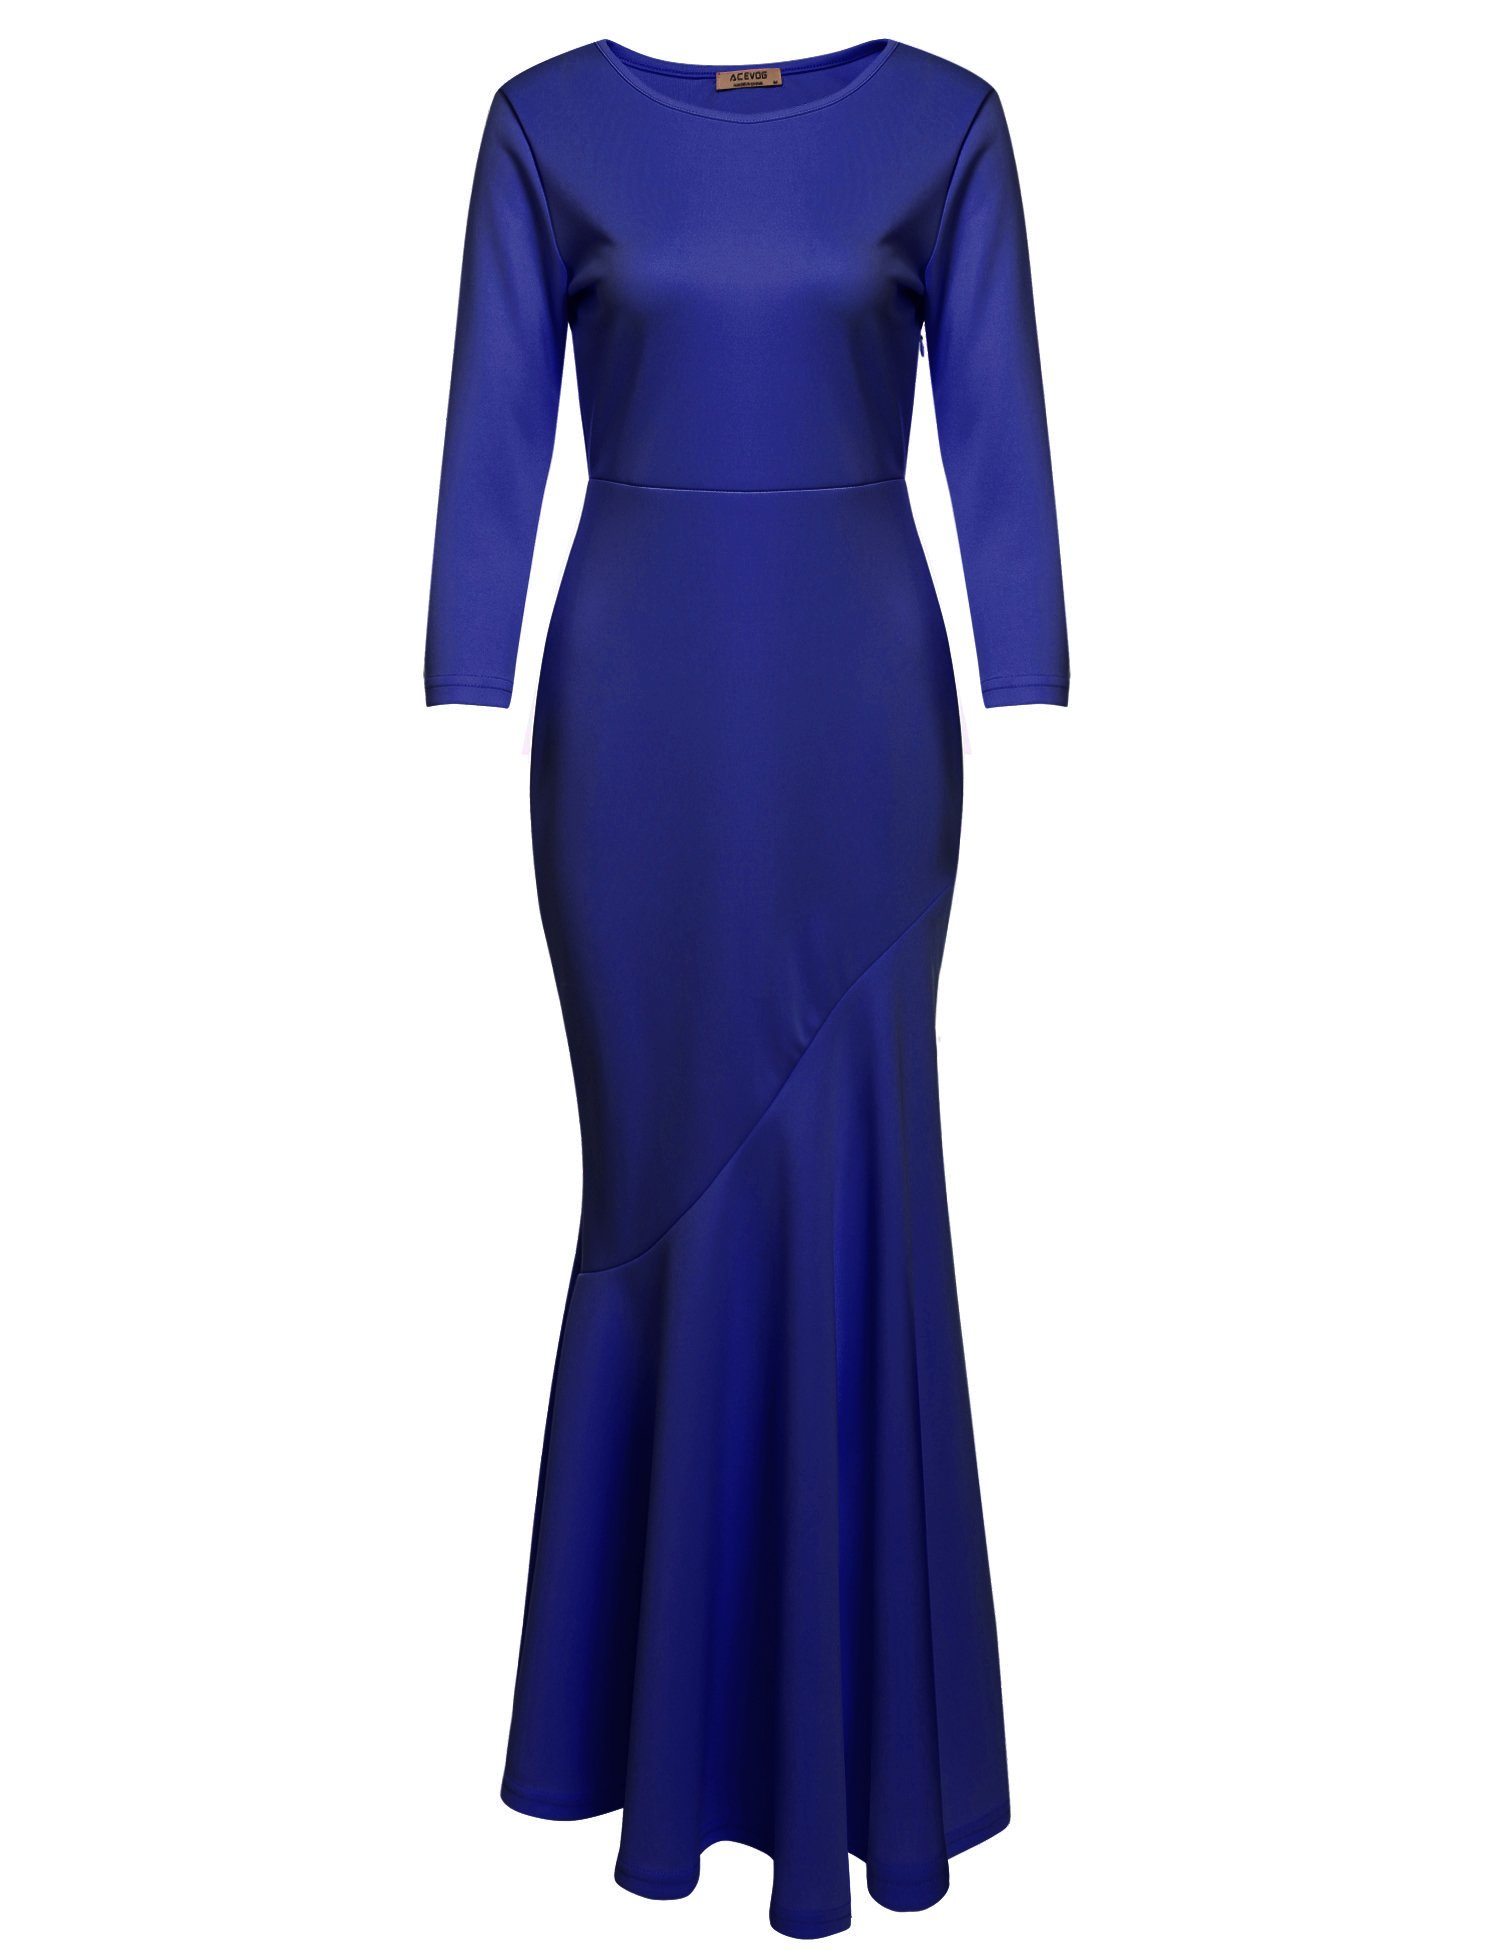 Available at Amazon: ACEVOG Women's 30s Brief Elegant Mermaid Evening Dress Bodycon Evening Gown